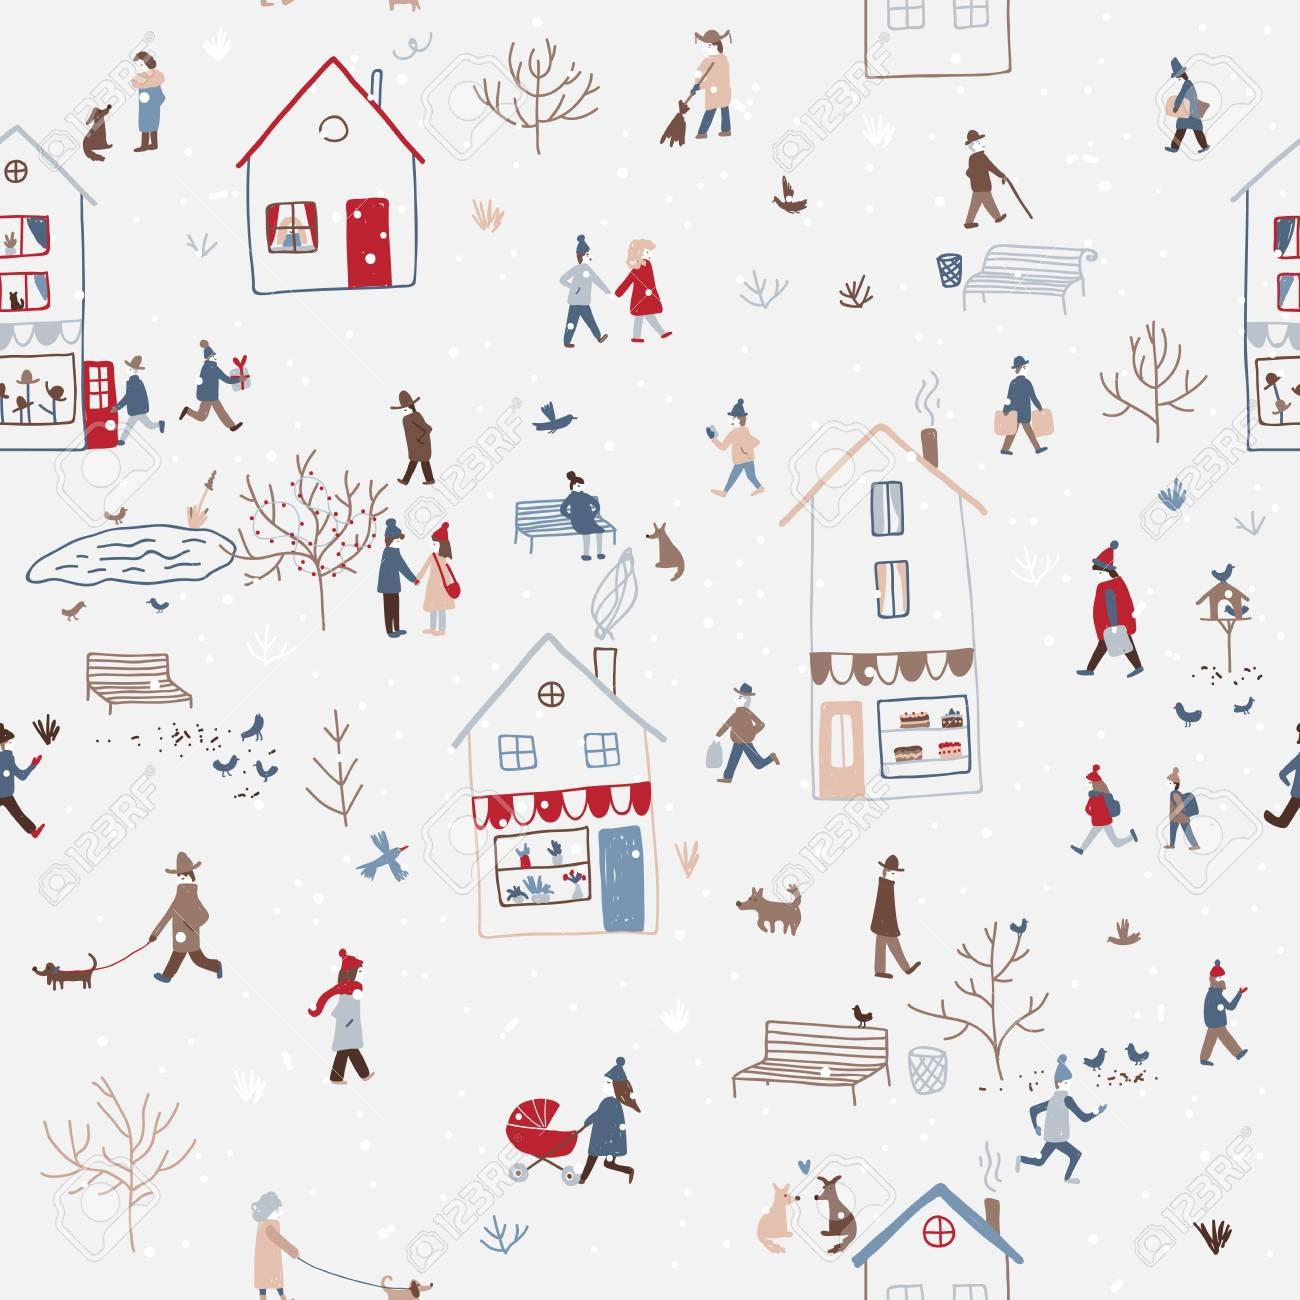 Vector winter seamless pattern with people walking in snowy Christmas city with houses, dog, tree, birds, snow. Can be printed and used as New Year wrapping paper, wallpaper, textile, etc. - 91376701